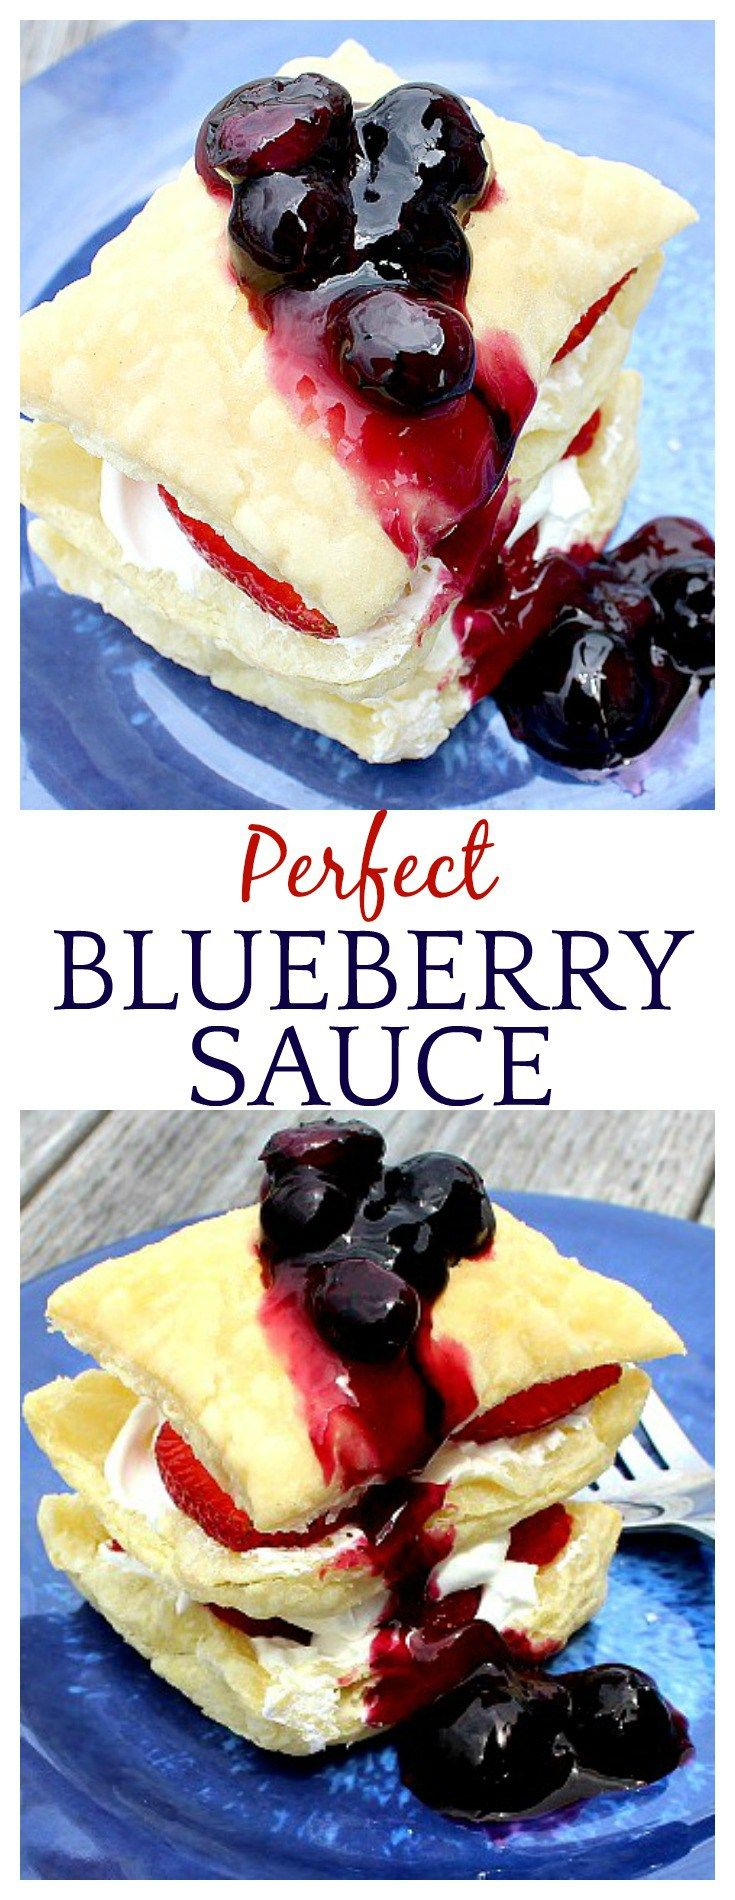 This blueberry sauce recipe would be so good on pie, pancakes, waffles, oatmeal, yogurt...I could go on and on! And it's so easy to make!